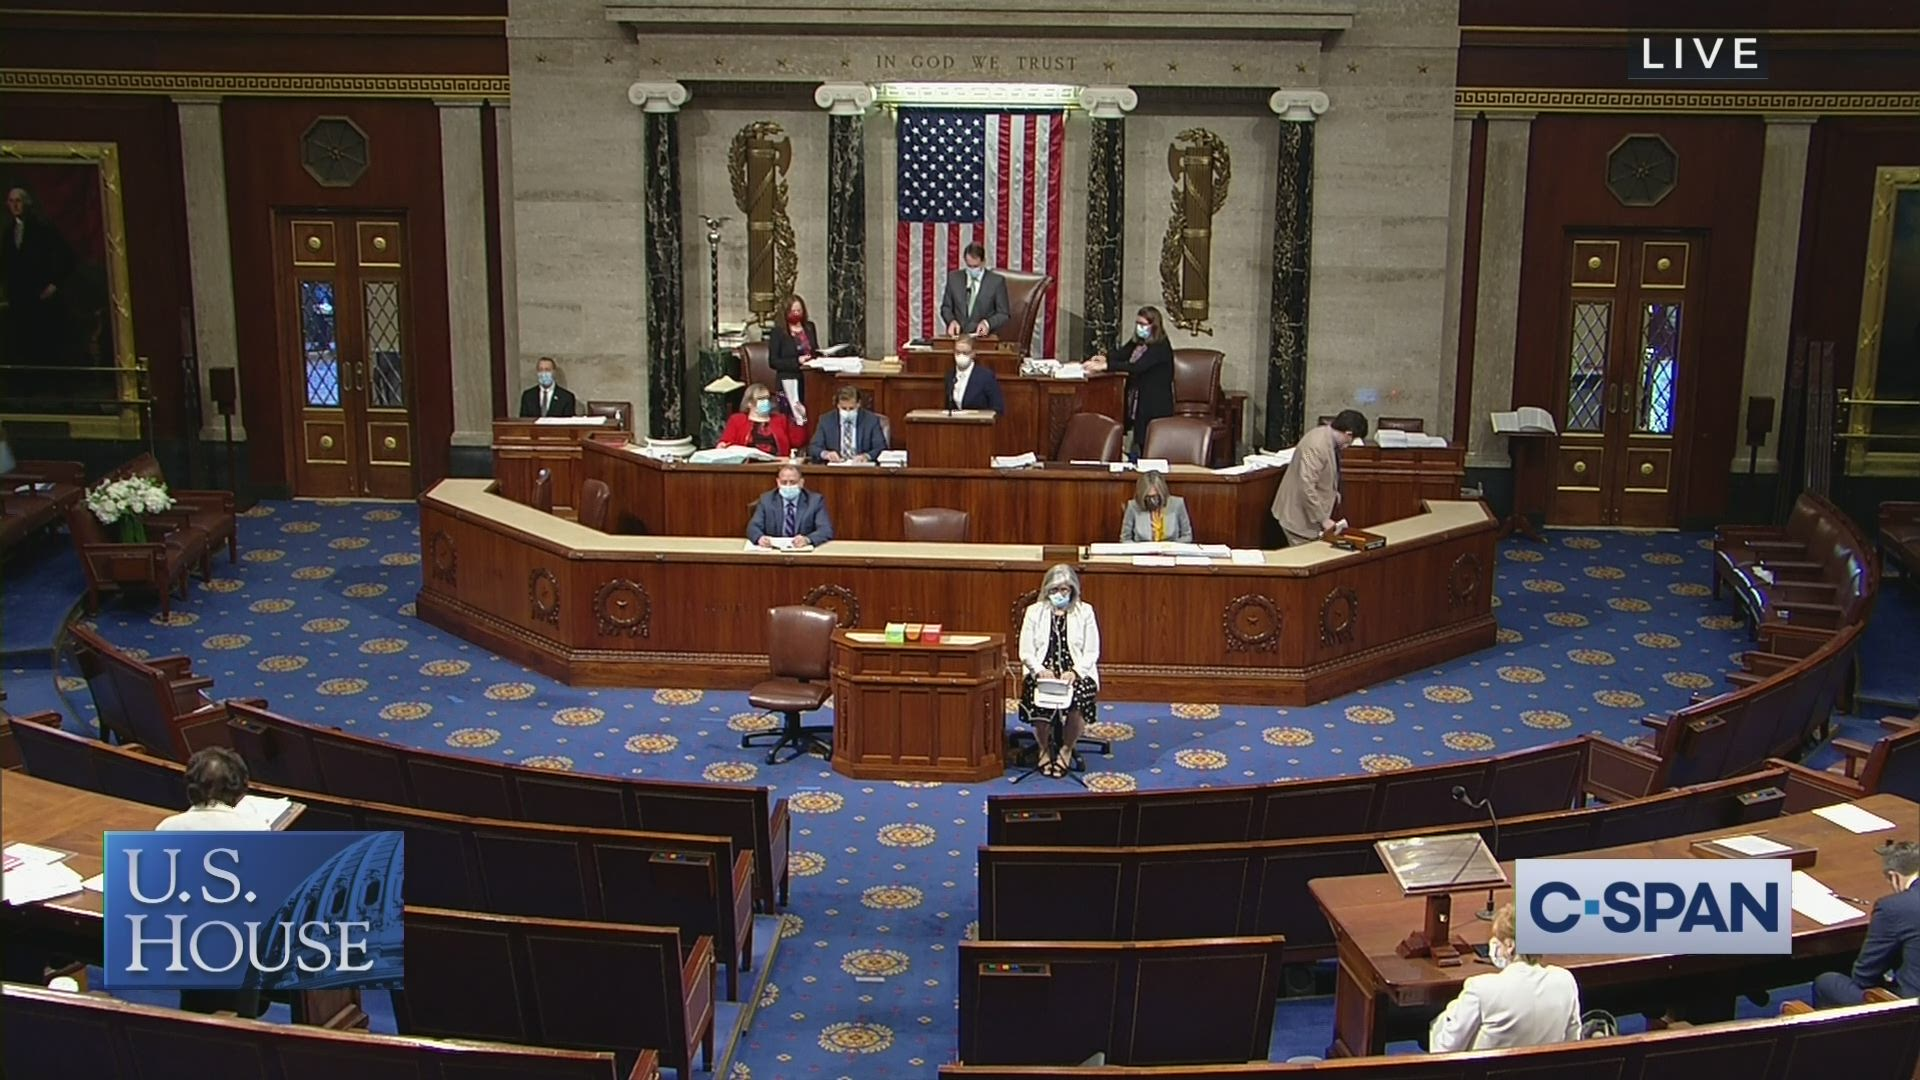 House Session Part 2 C Span Org